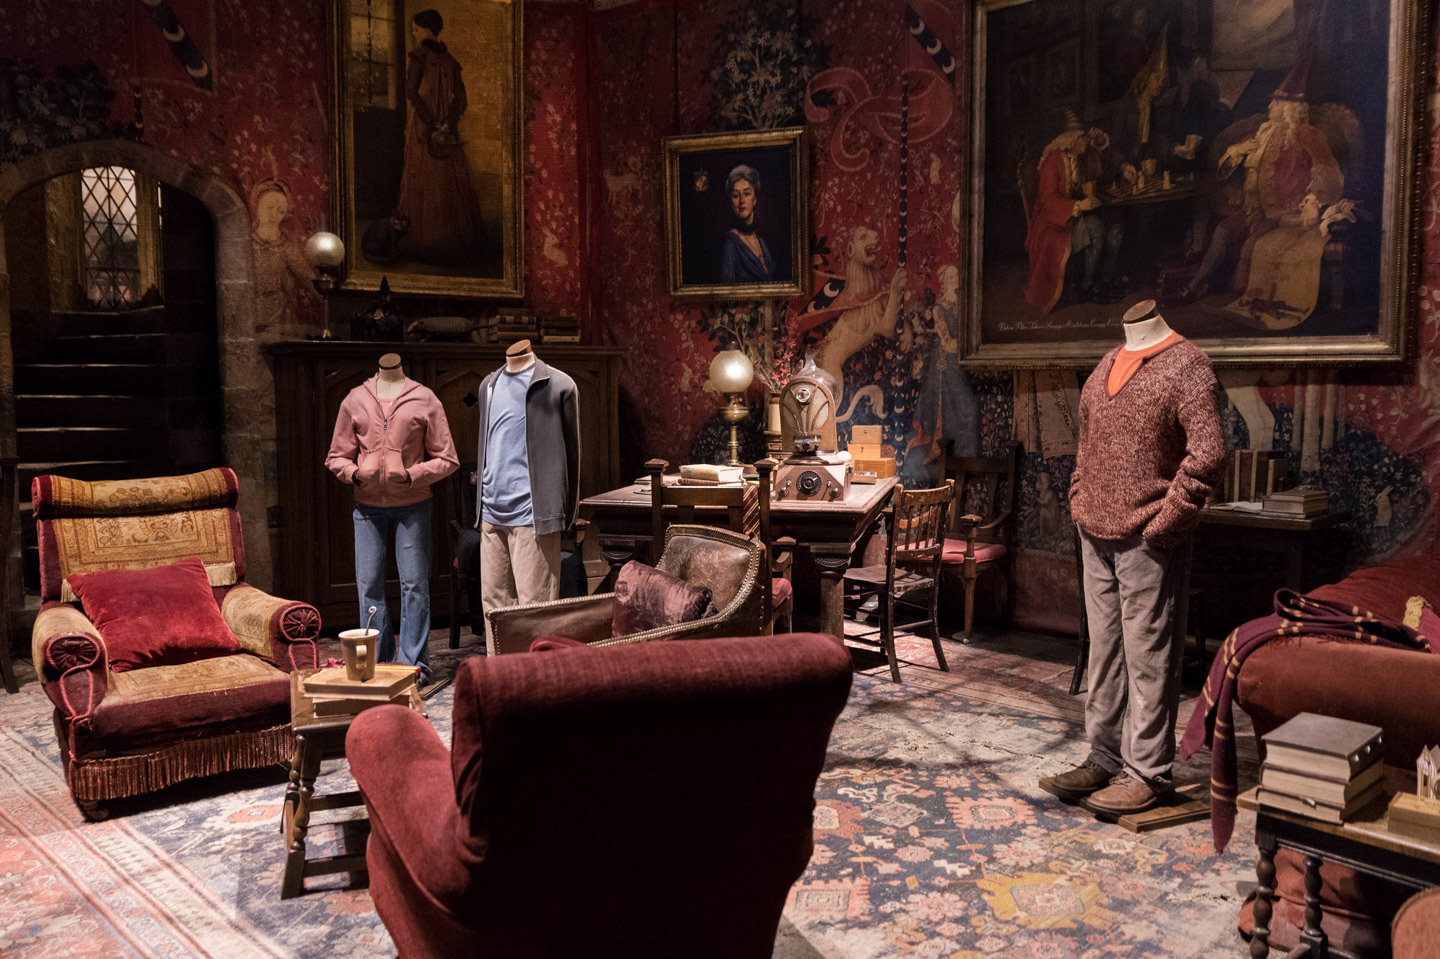 Blog-Mode-And-The-City-Lifestyle-Visite-Studios-Harry-Potter-Londres-7